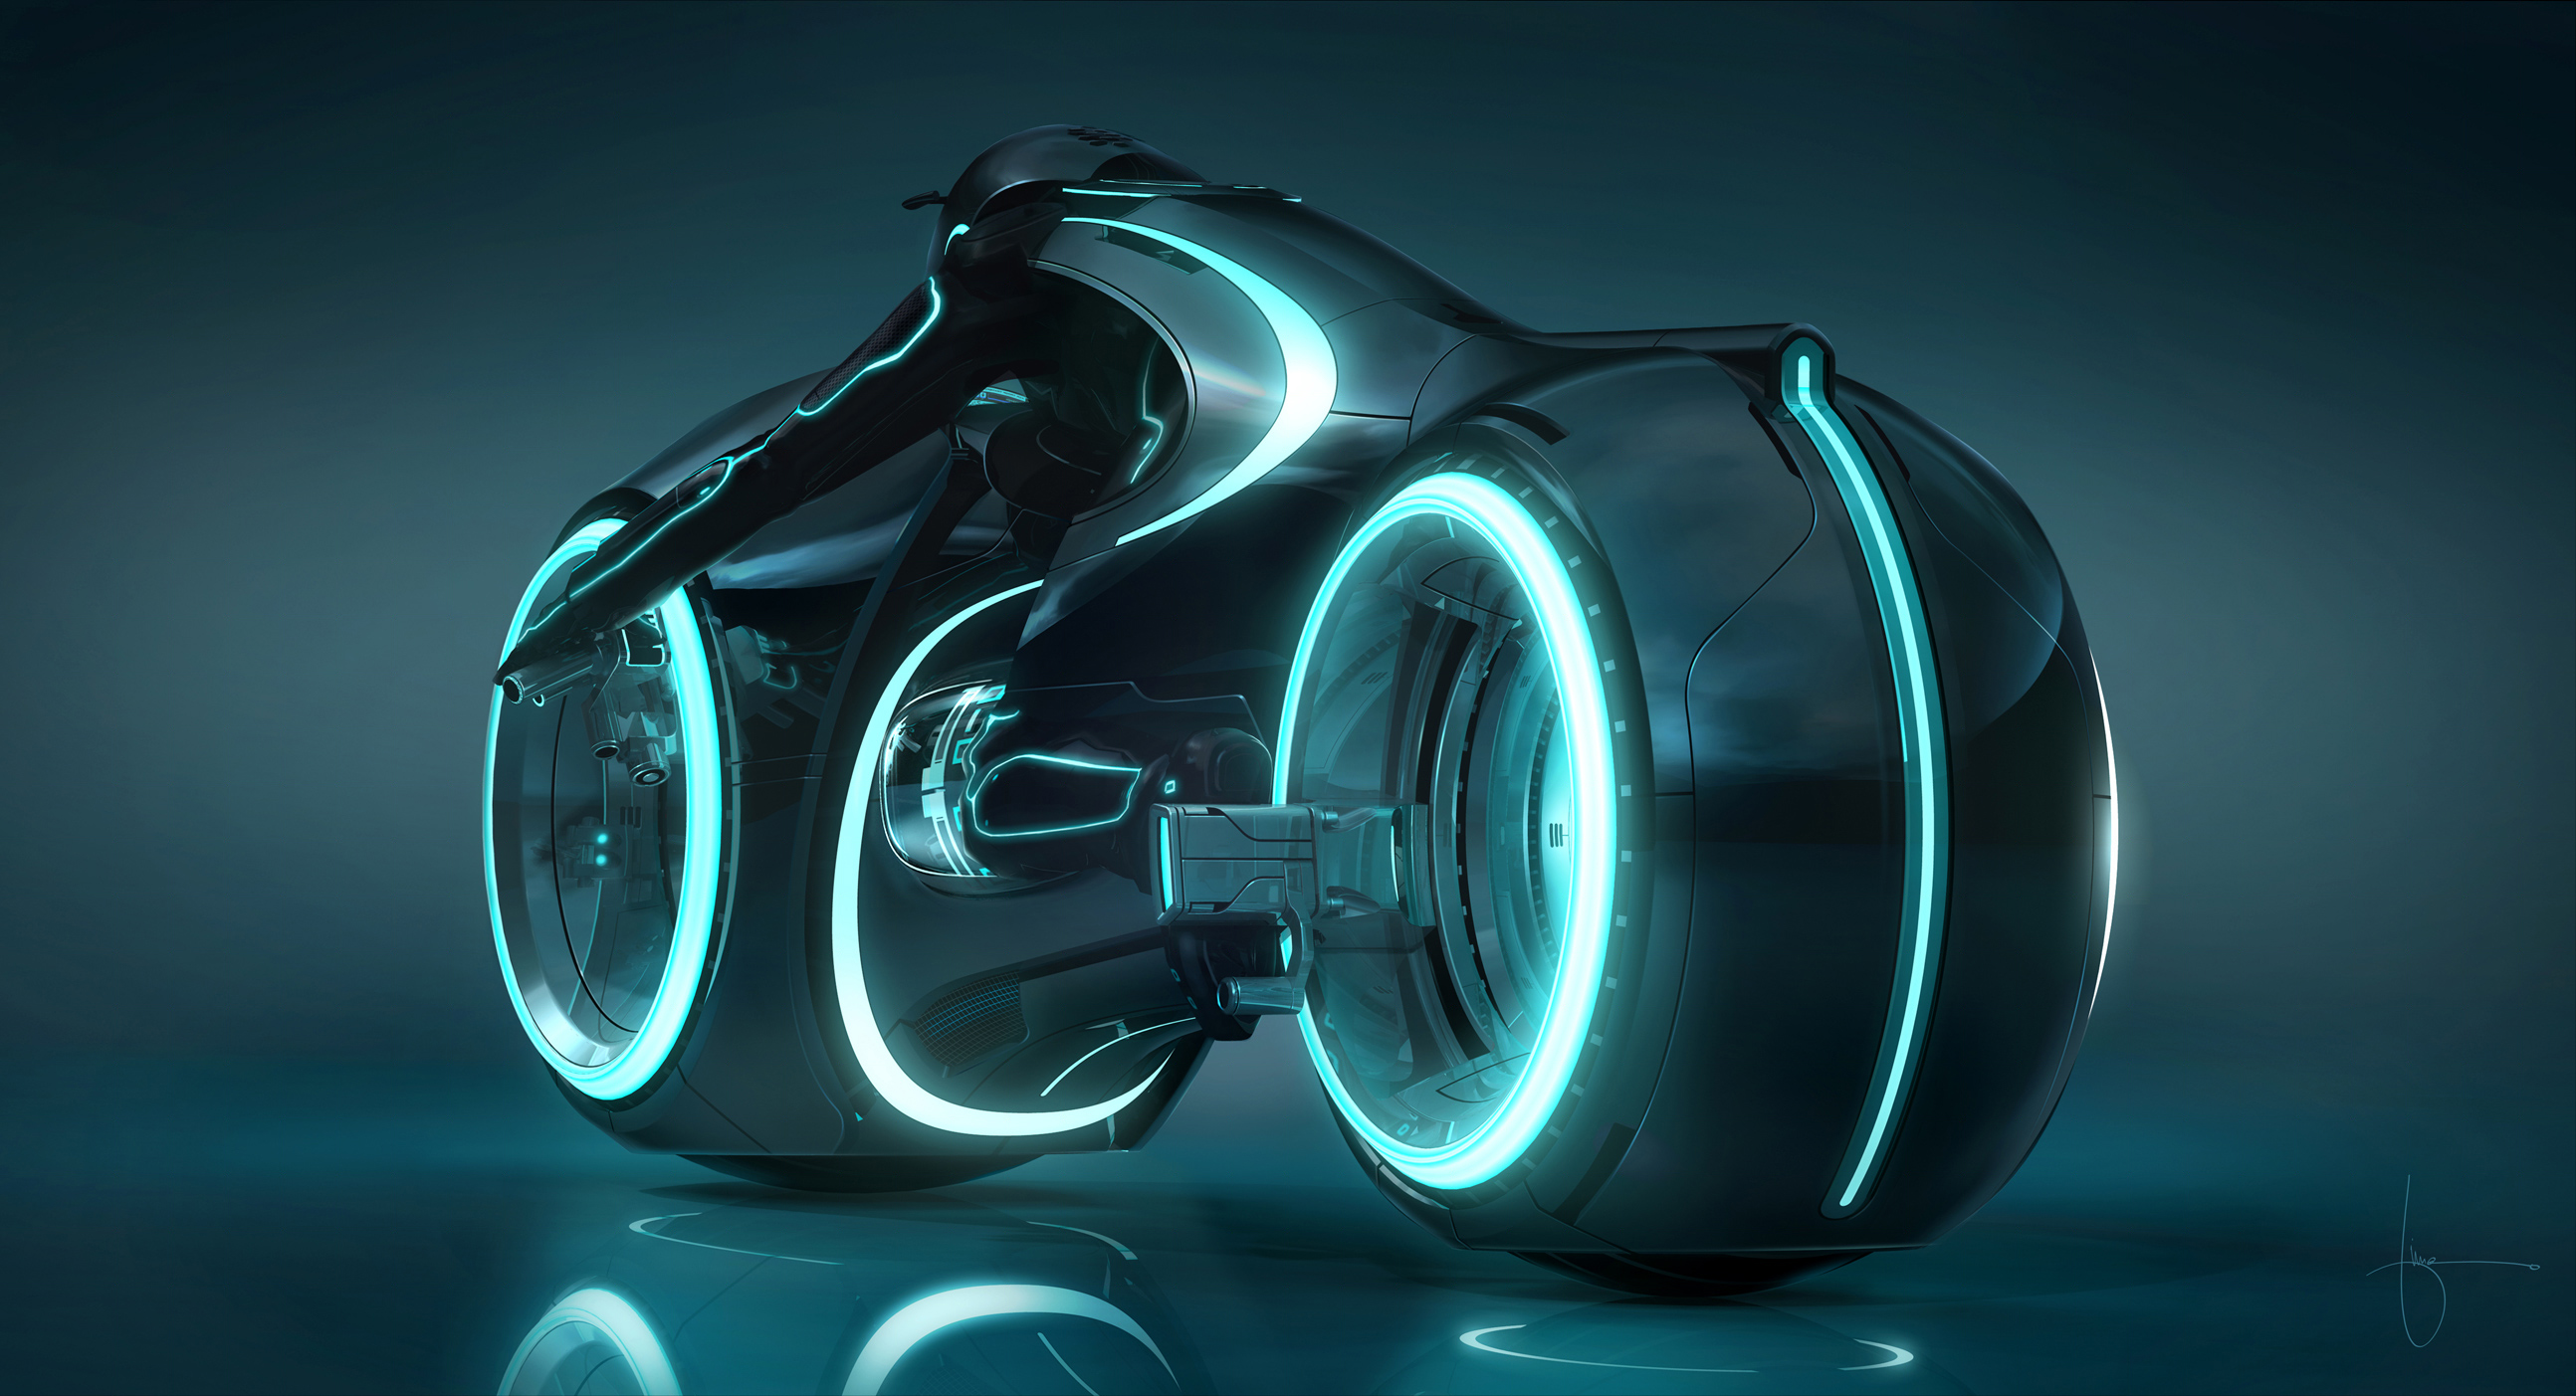 240 tron: legacy hd wallpapers | background images - wallpaper abyss